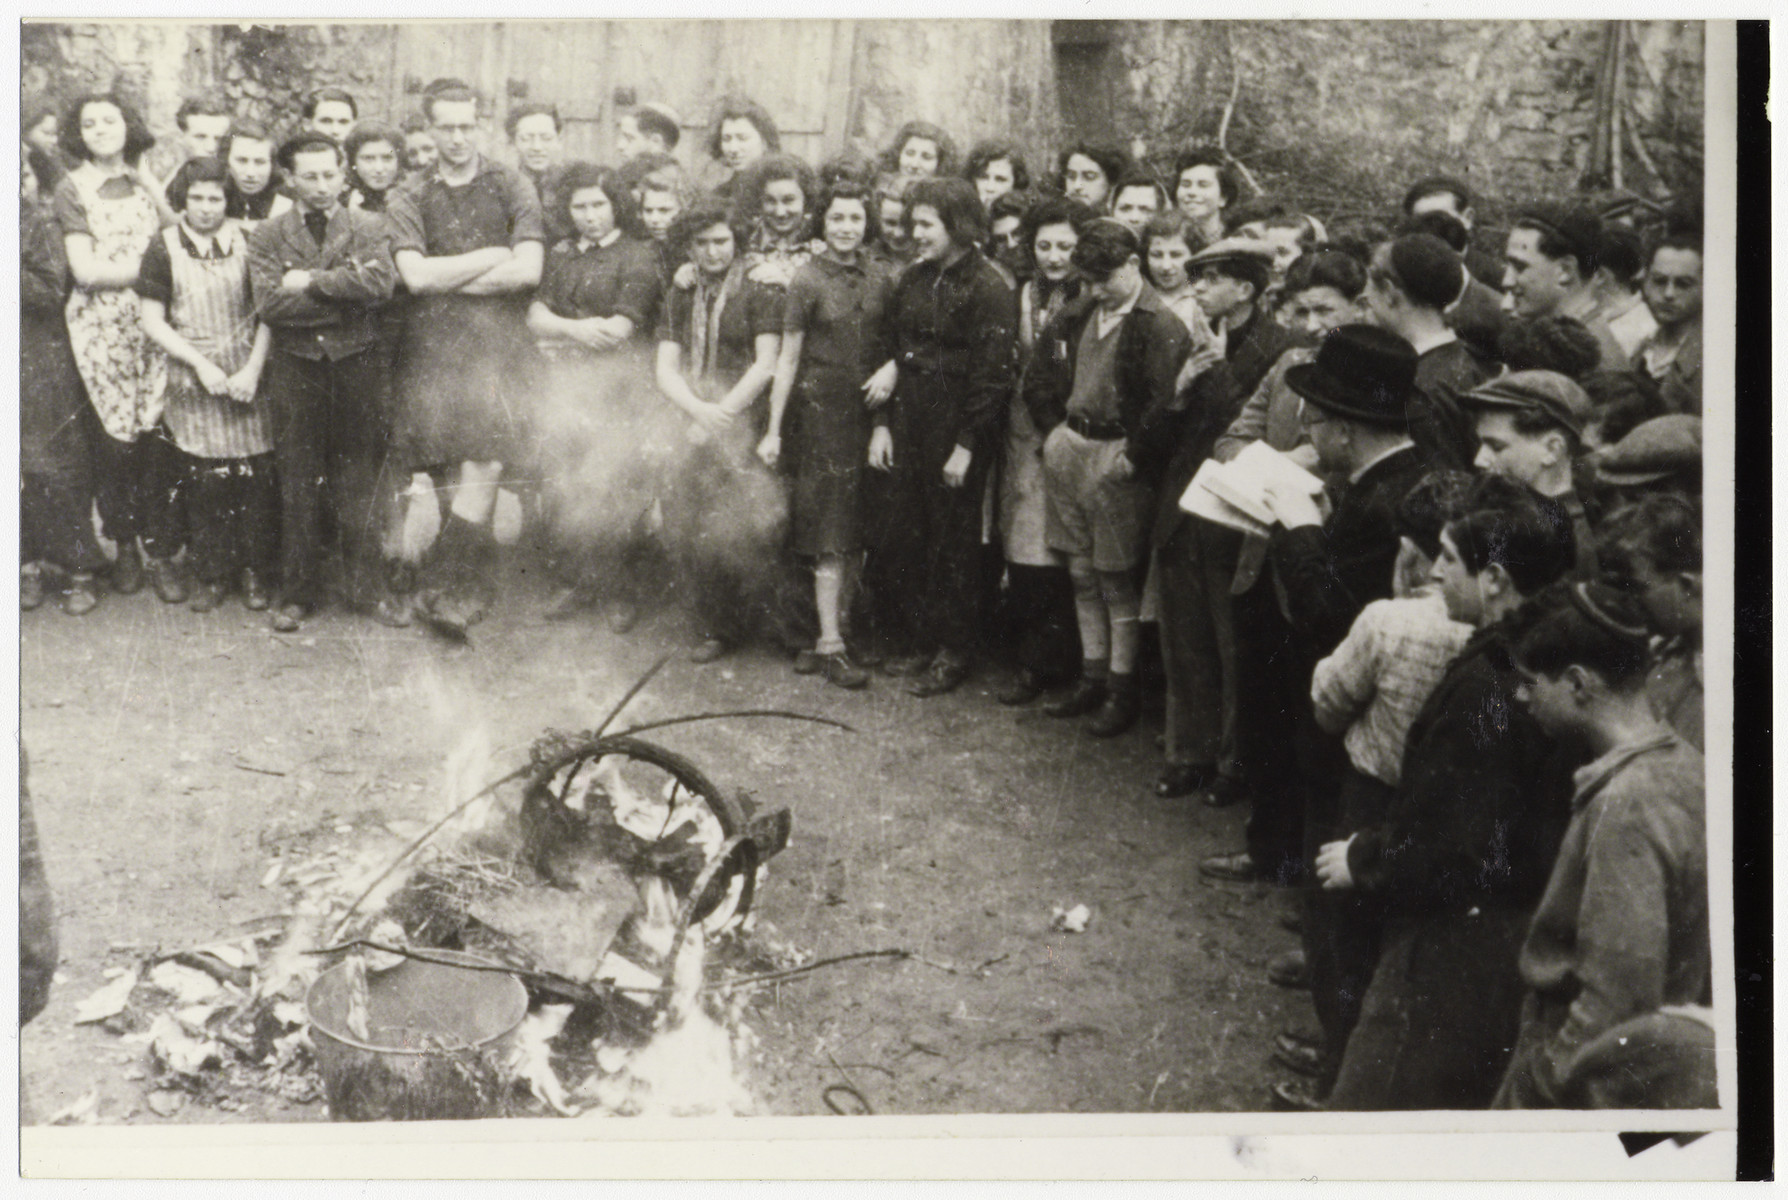 Jewish youth burn chametz [leavened bread] in preparation for the Passover holiday.  Among those pictured is Tosca Sussman in the back row.  Also pictured are Mary Auskerin, Arisch Schneider, Rabbi Sperber, Esther Weisner, Suzy Schindel, Erica Levin, Sonia Better, Tutti, Edith Metzger, Margot, David Graneck (work organizer), Annie Levin (nee Feldman), Lotte Aronowicz, and Ruth Ring (back center).